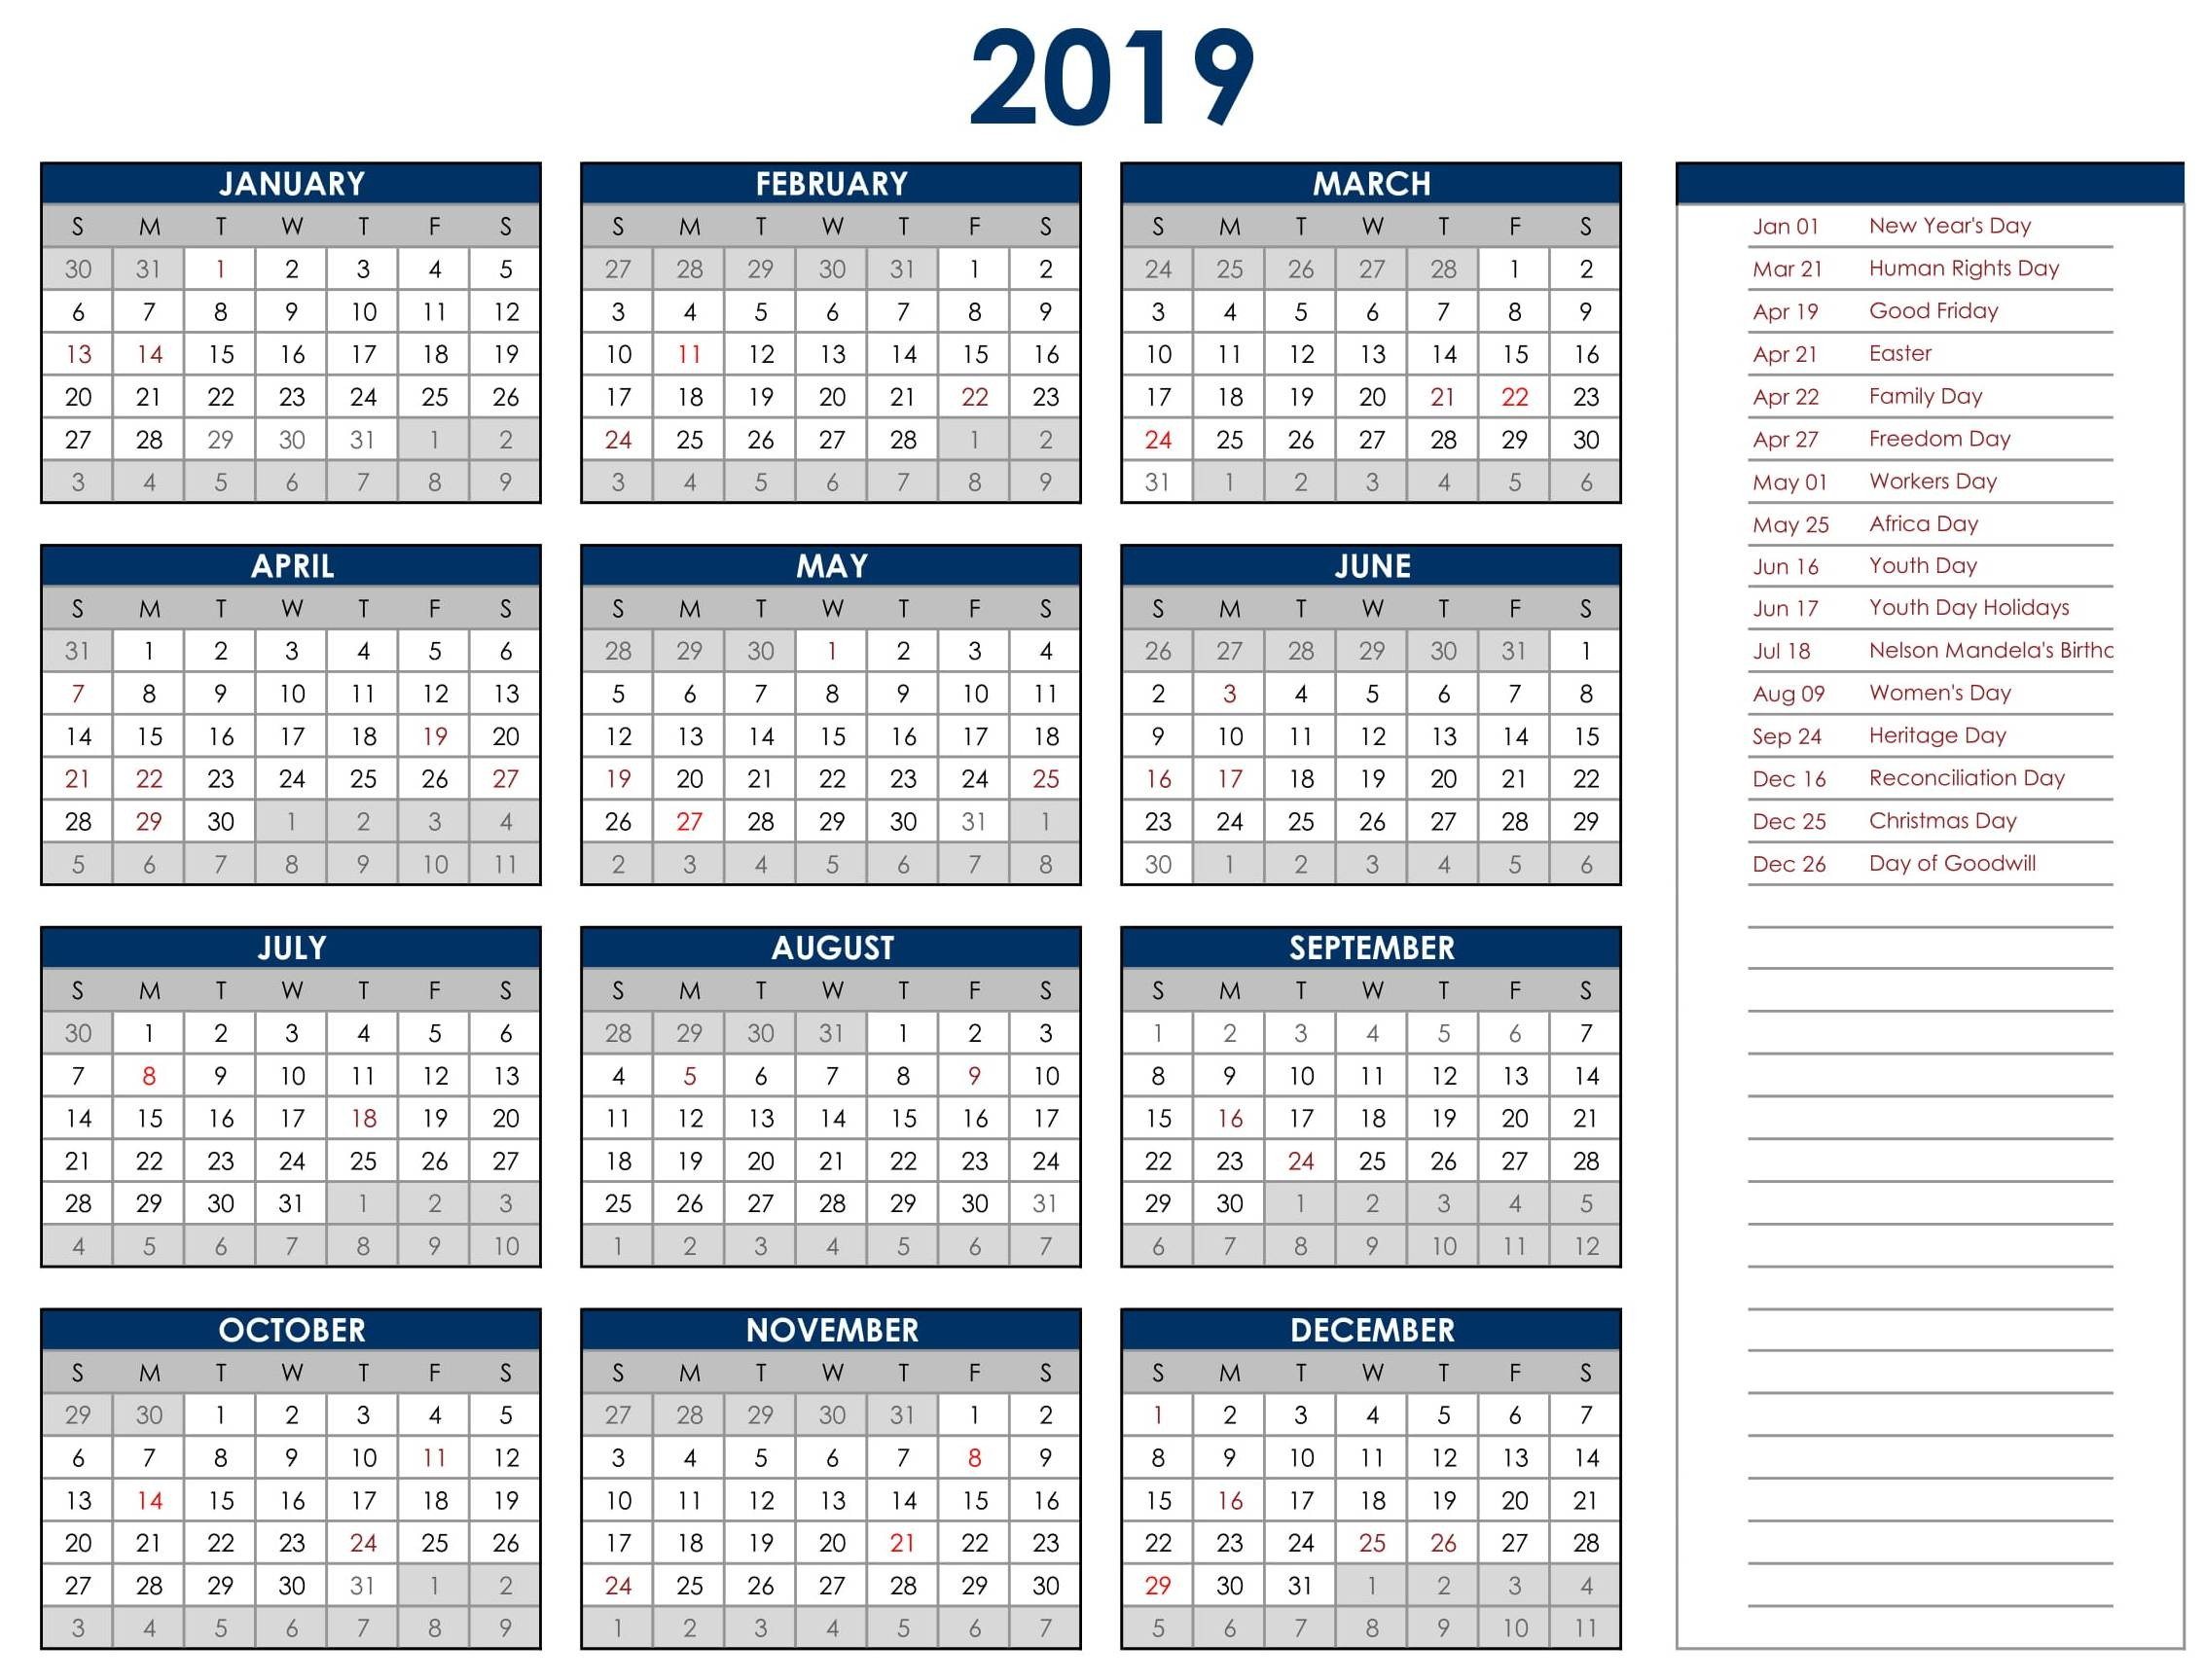 2019 yearly calendar template excel south africa